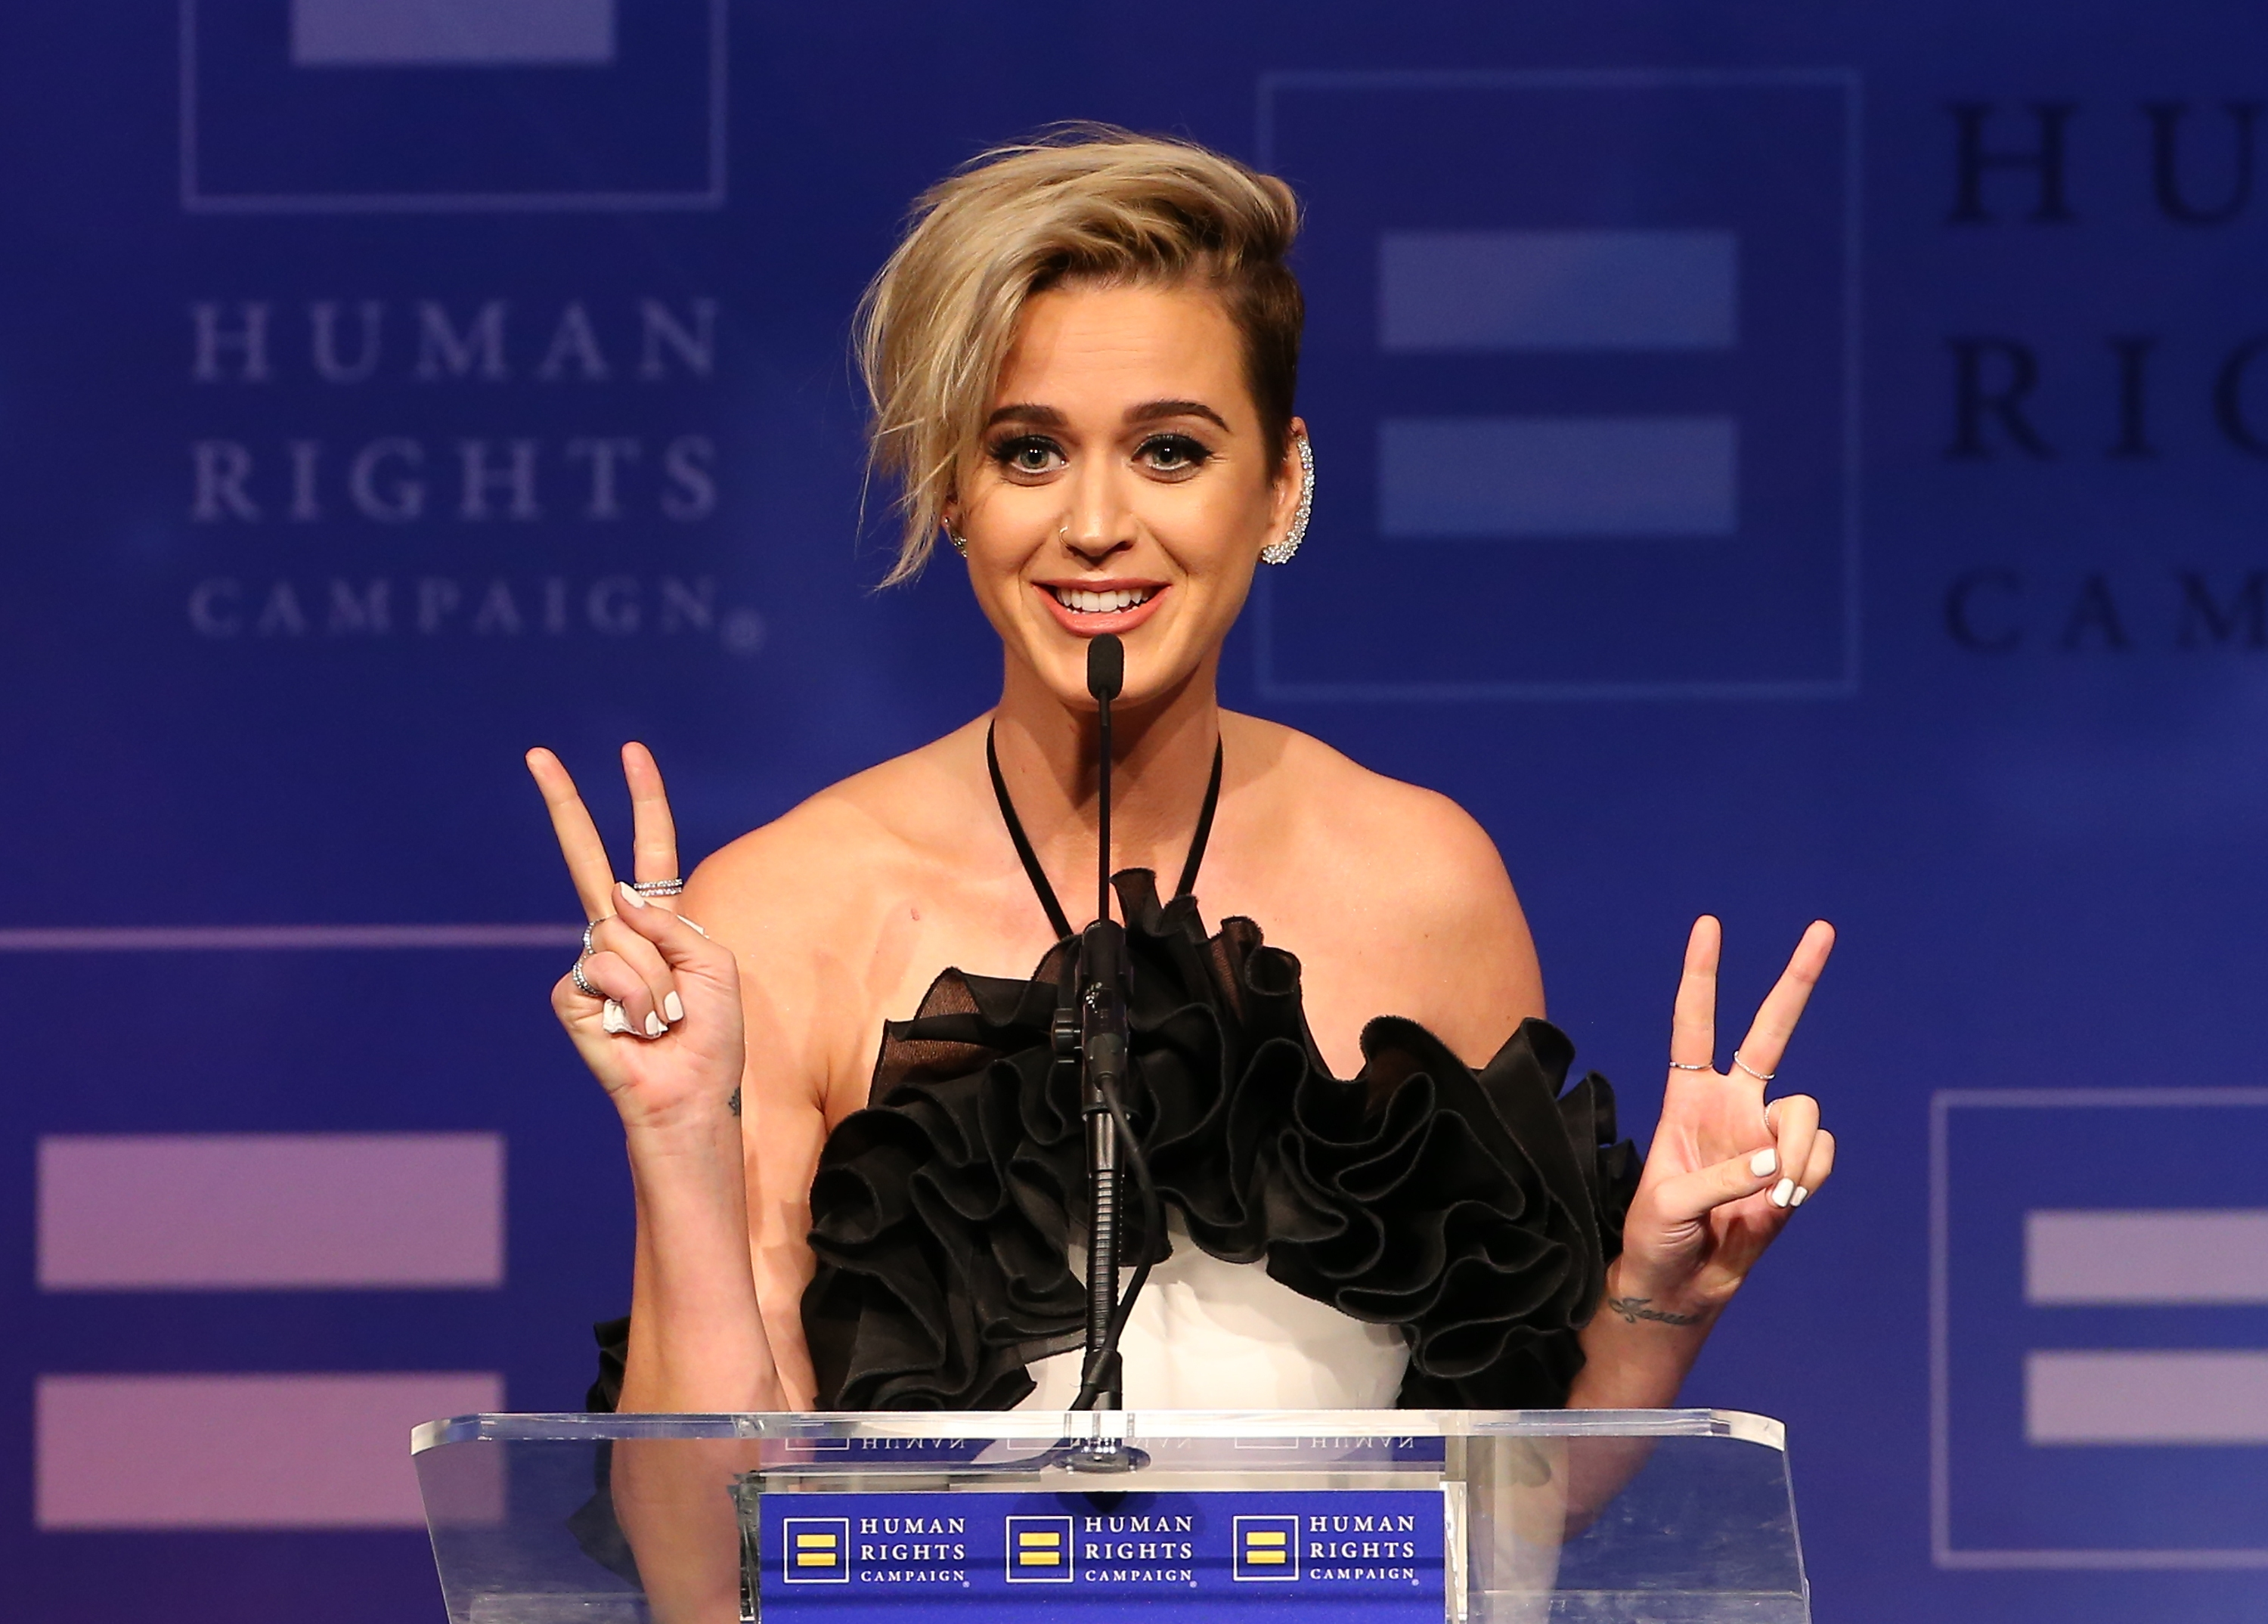 Human Rights Campaign's 2017 Los Angeles Gala Dinner - Show